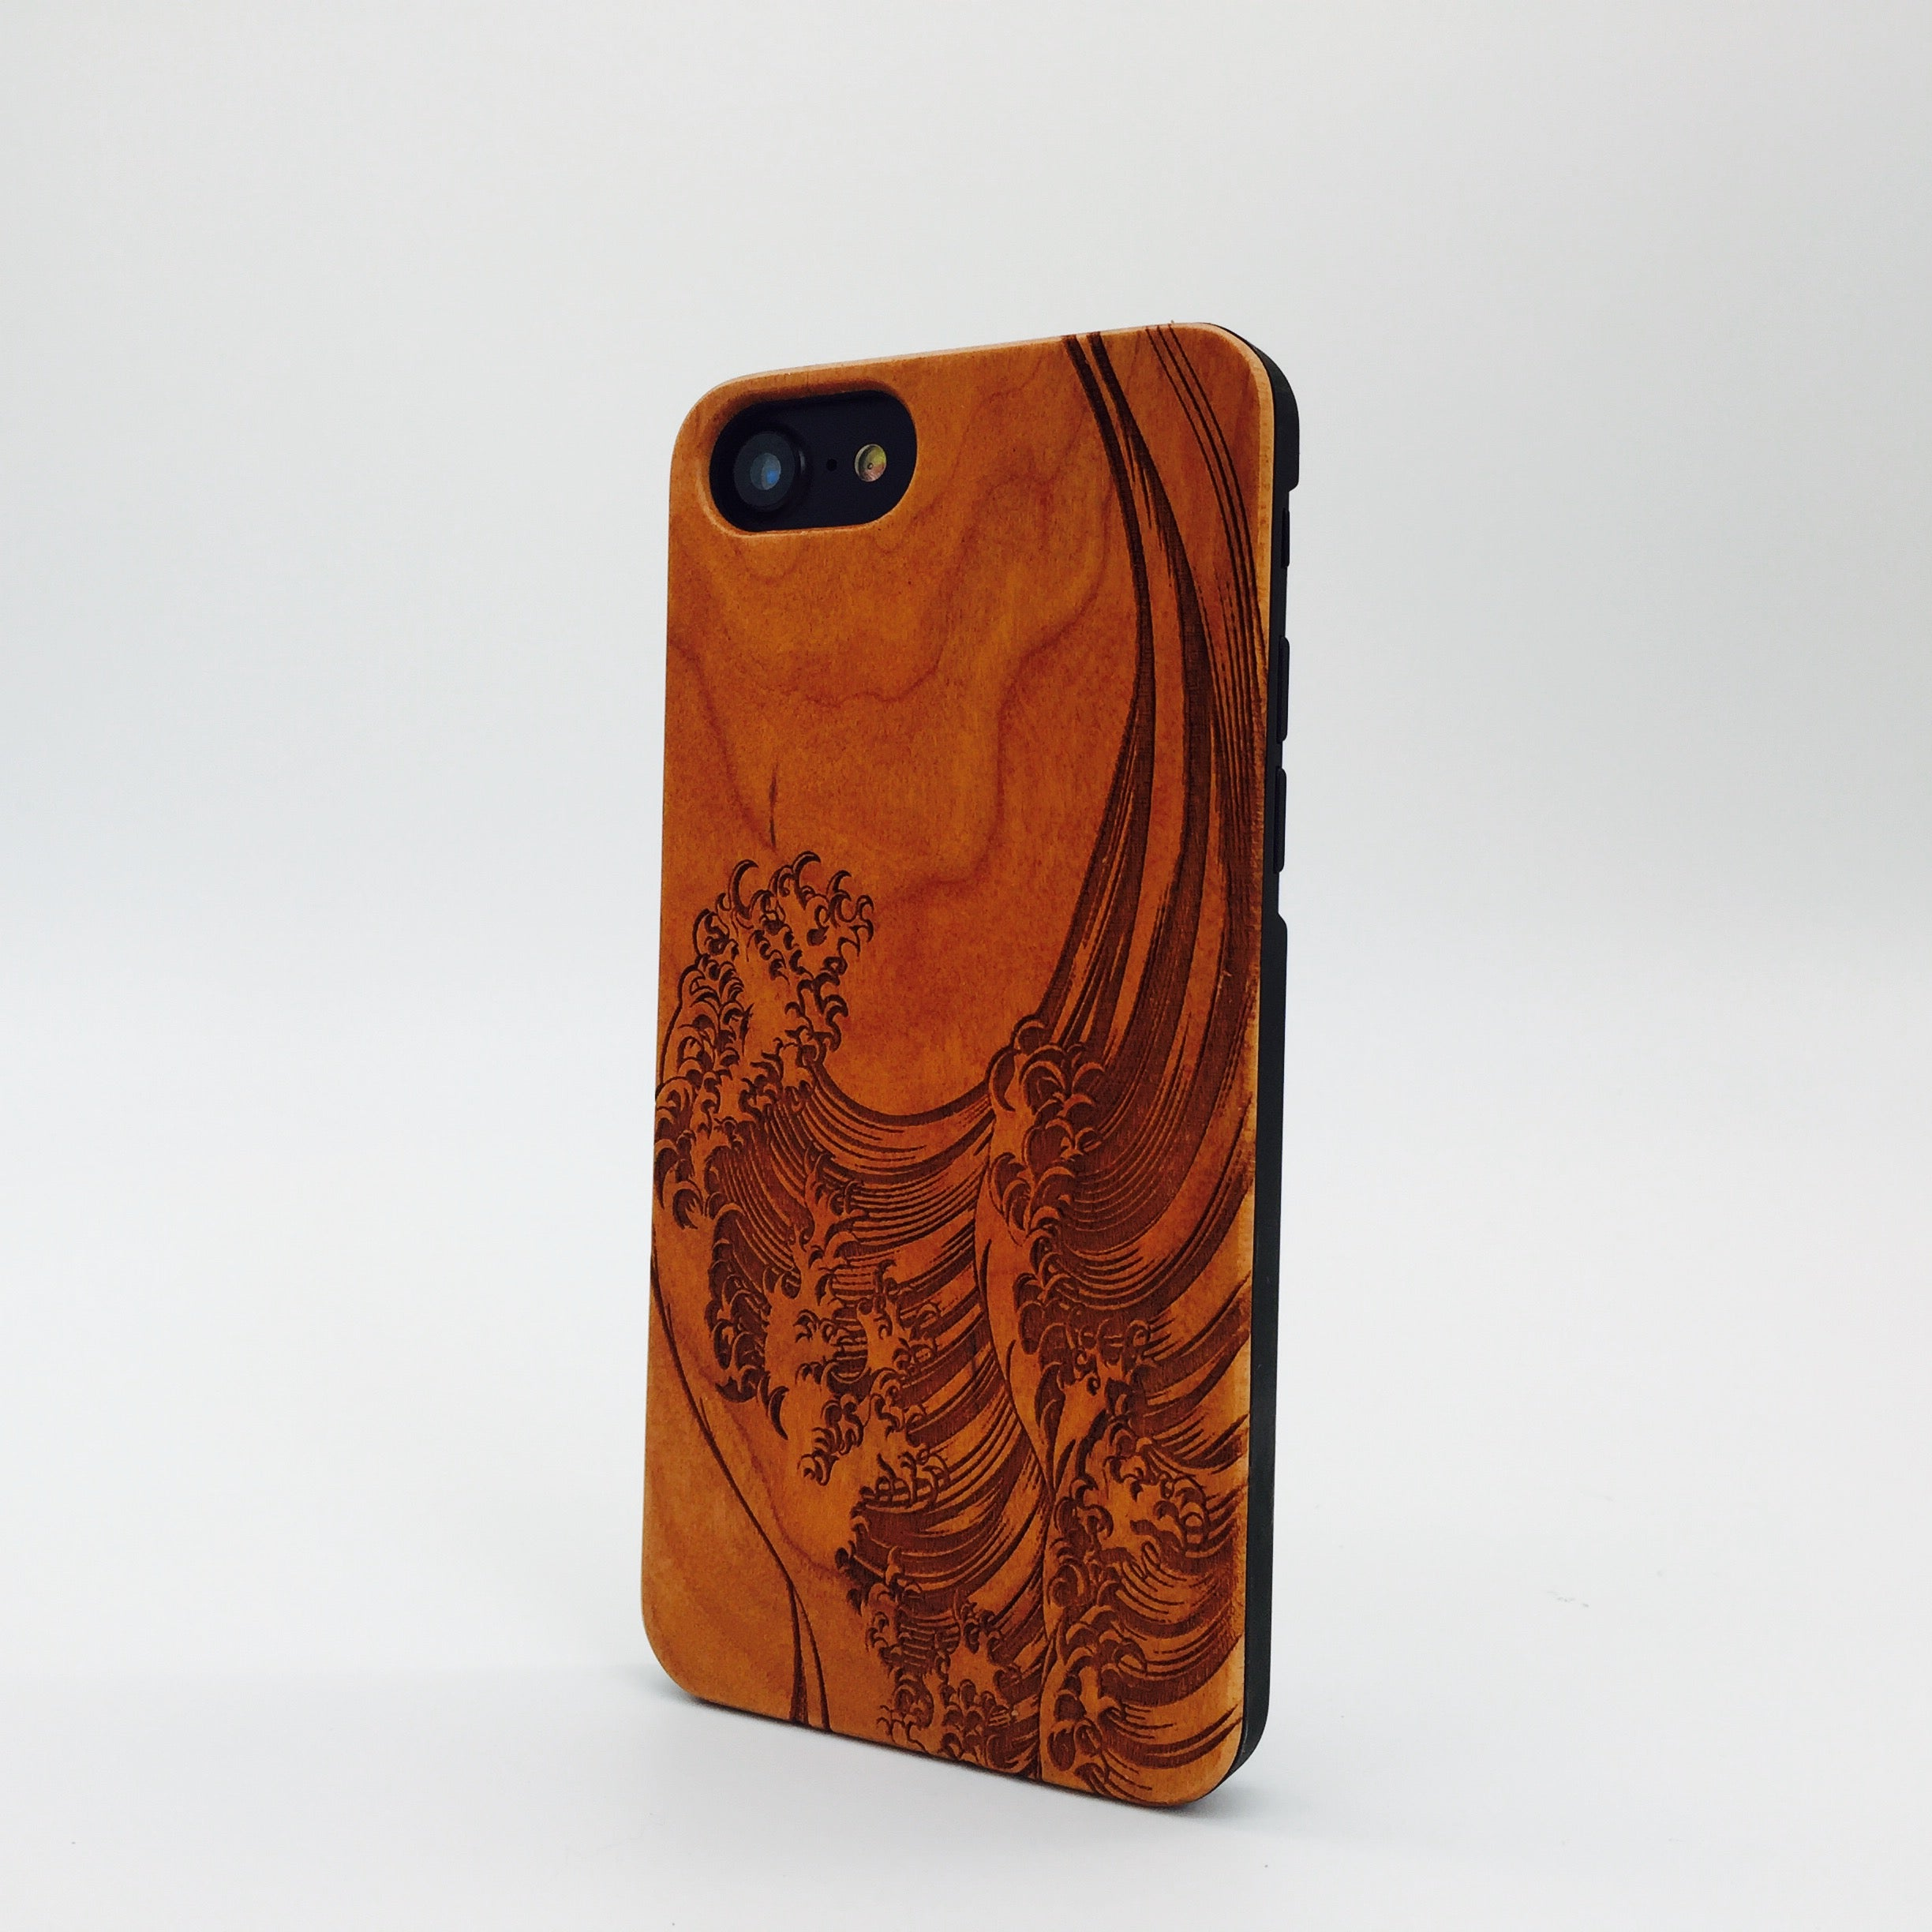 The-Great-Wave-iPhone-7-7-Plus-iPhone-8-8-Plus-Slim-Back-Phone-Case-Cover